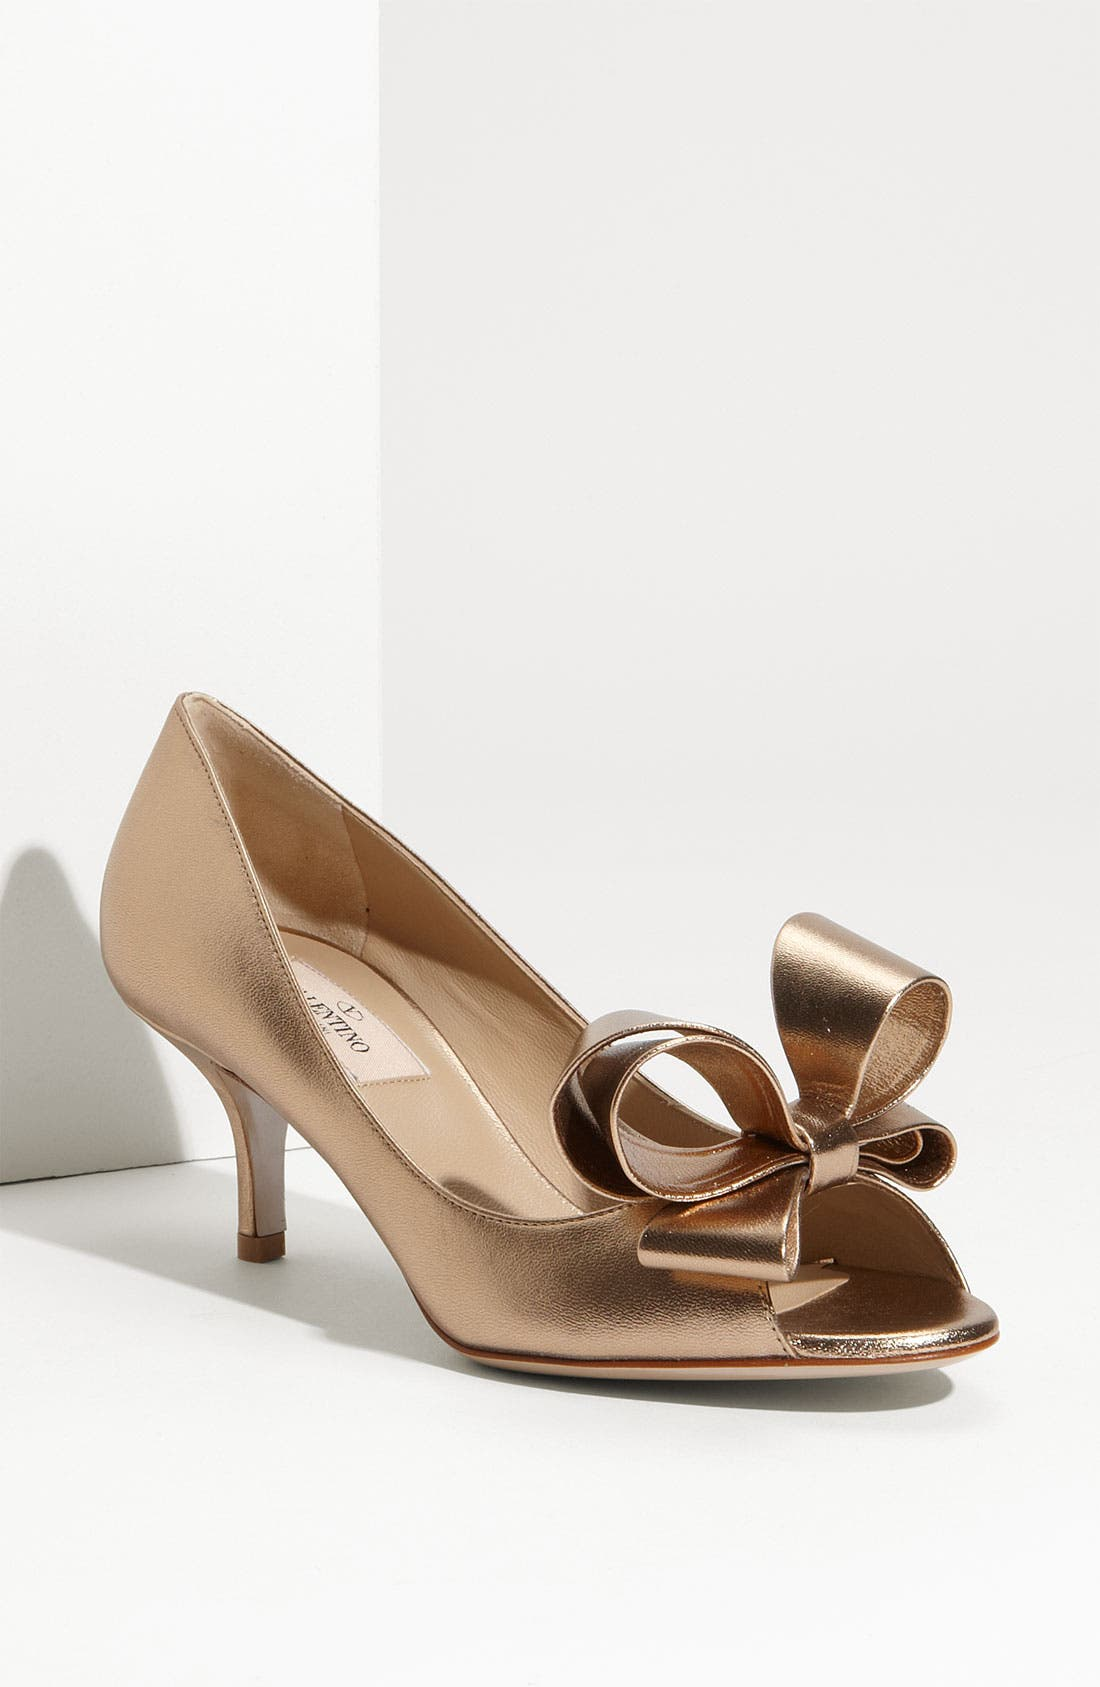 Main Image - Valentino Metallic Nappa Couture Bow Pump